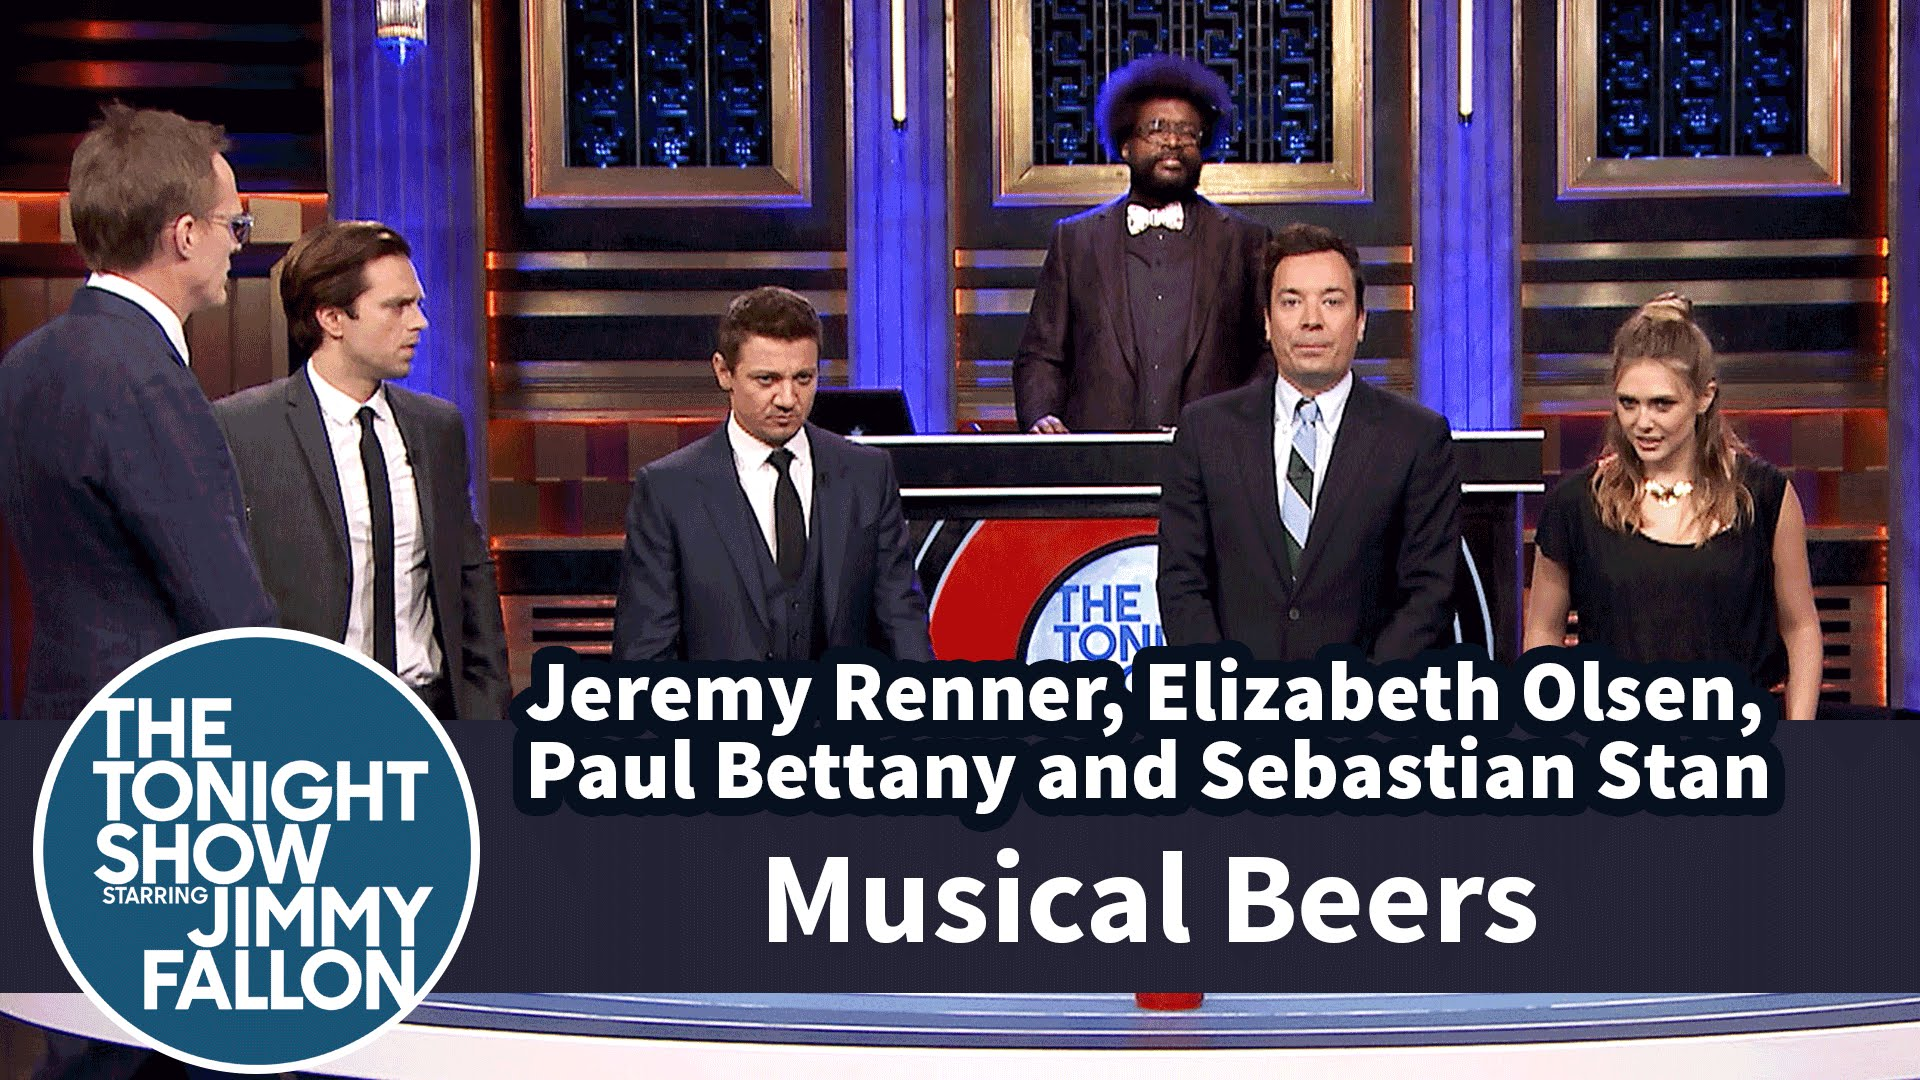 Musical Beers with Jeremy Renner, Elizabeth Olsen, Paul Bettany and Sebastian Stan смотреть онлайн